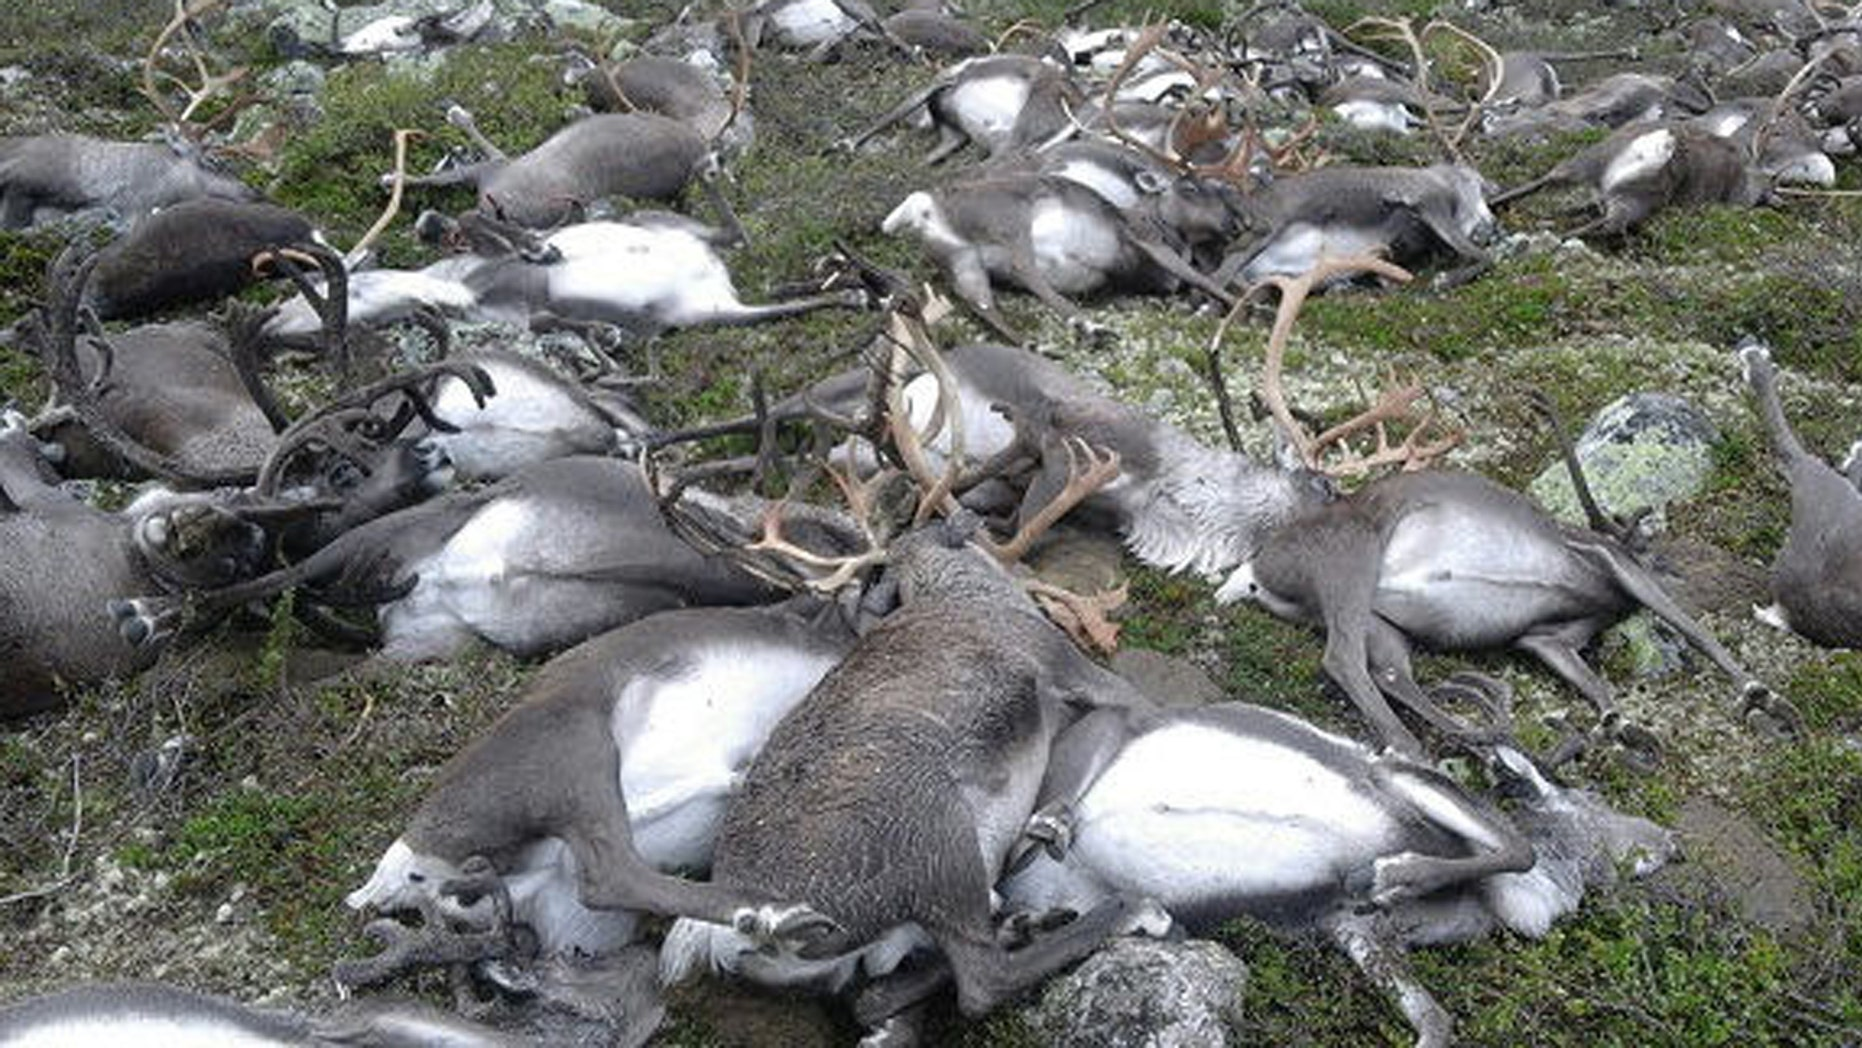 Aug. 26, 2016: This image shows some of the 323 reindeer killed by a lightning strike on the Hardangervidda mountain plateau in central Norway